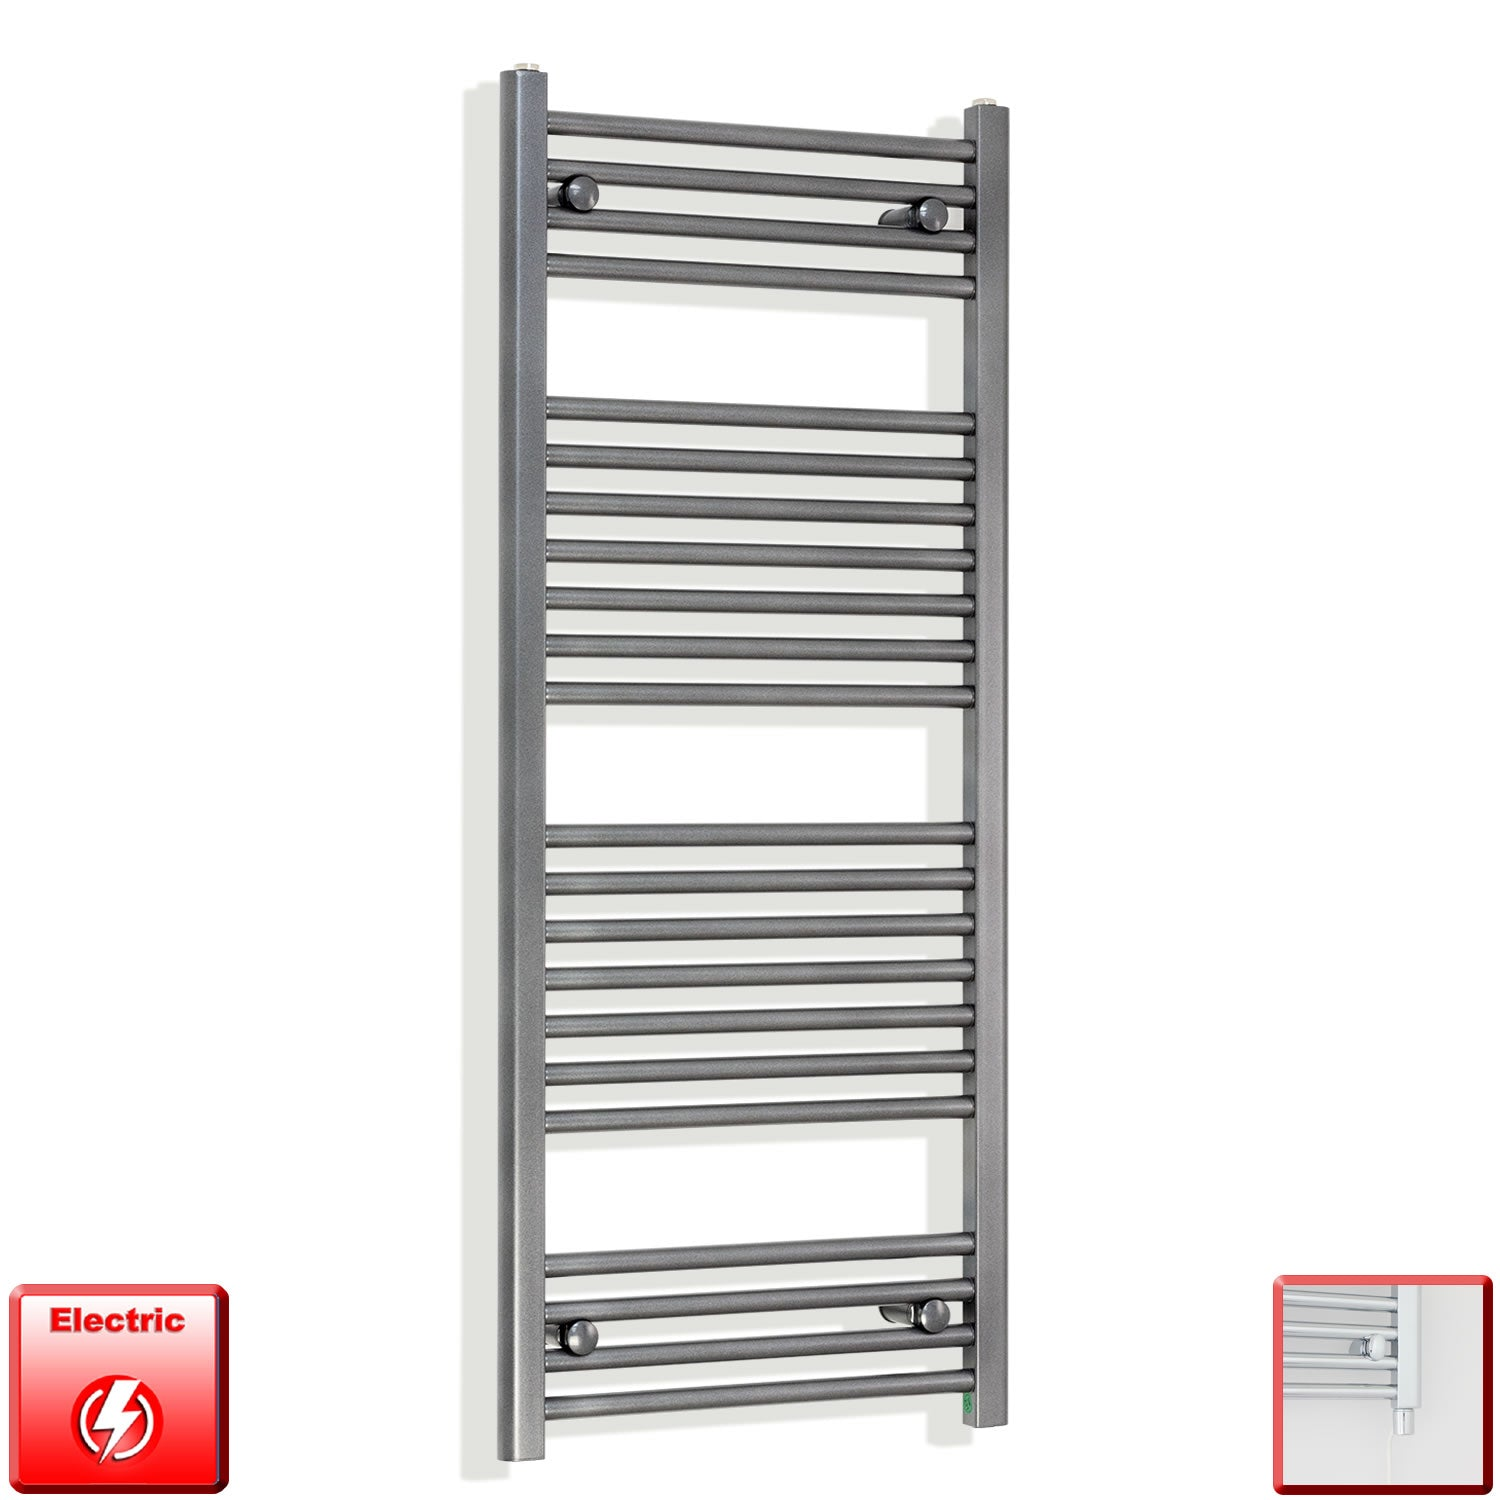 1200 mm High 500 mm Wide Heated Flat Towel Rail Radiator Anthracite Pre-filled with single heat element  Electric